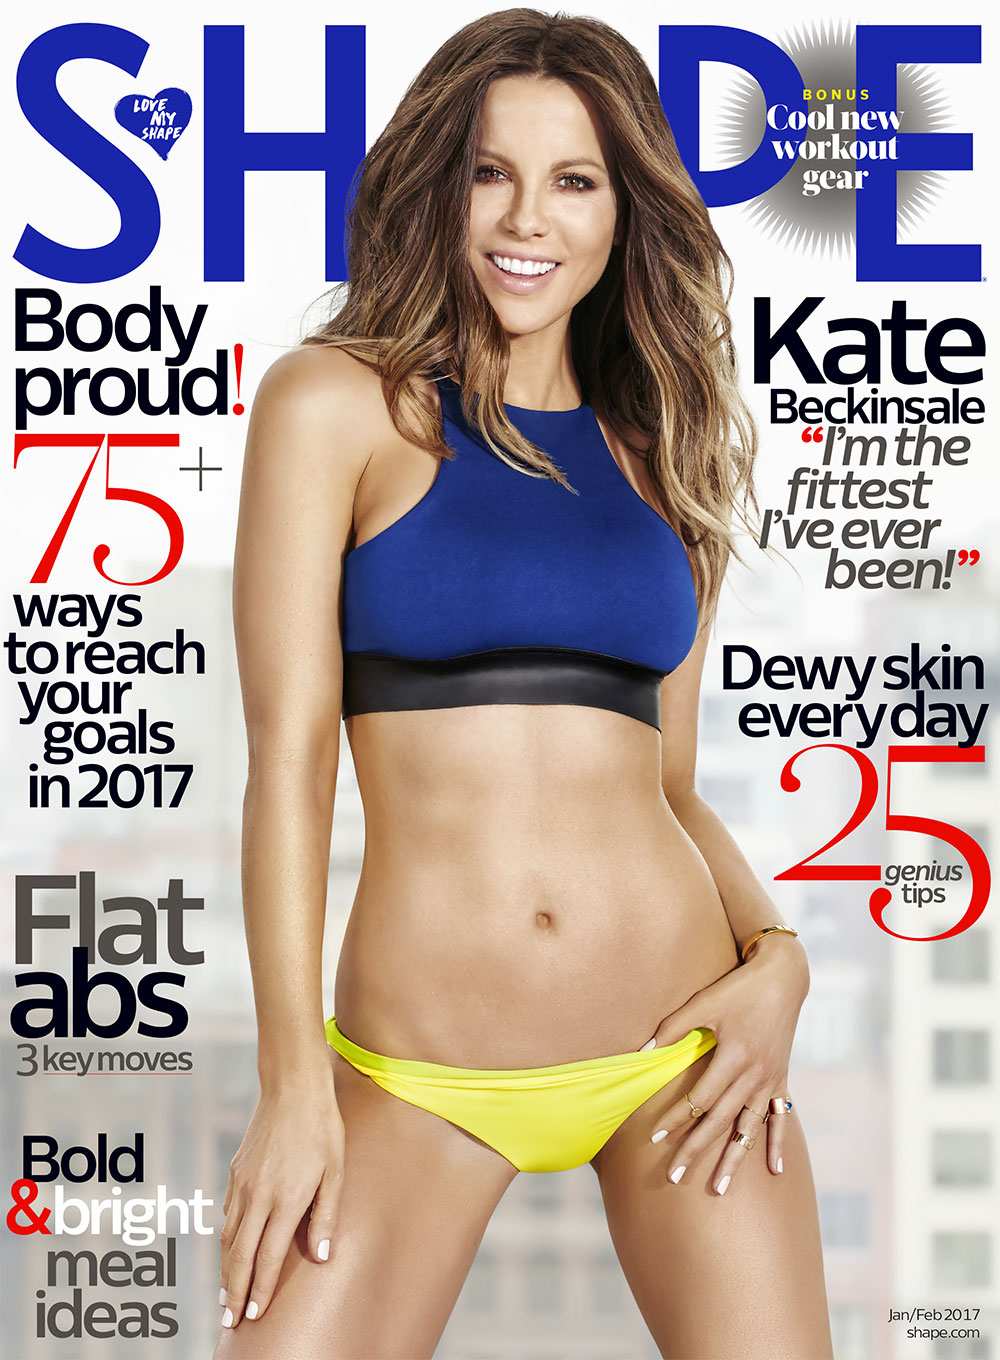 SHAPE - SHAPE is a women's health, fitness, and lifestyle magazine that promotes healthy living over